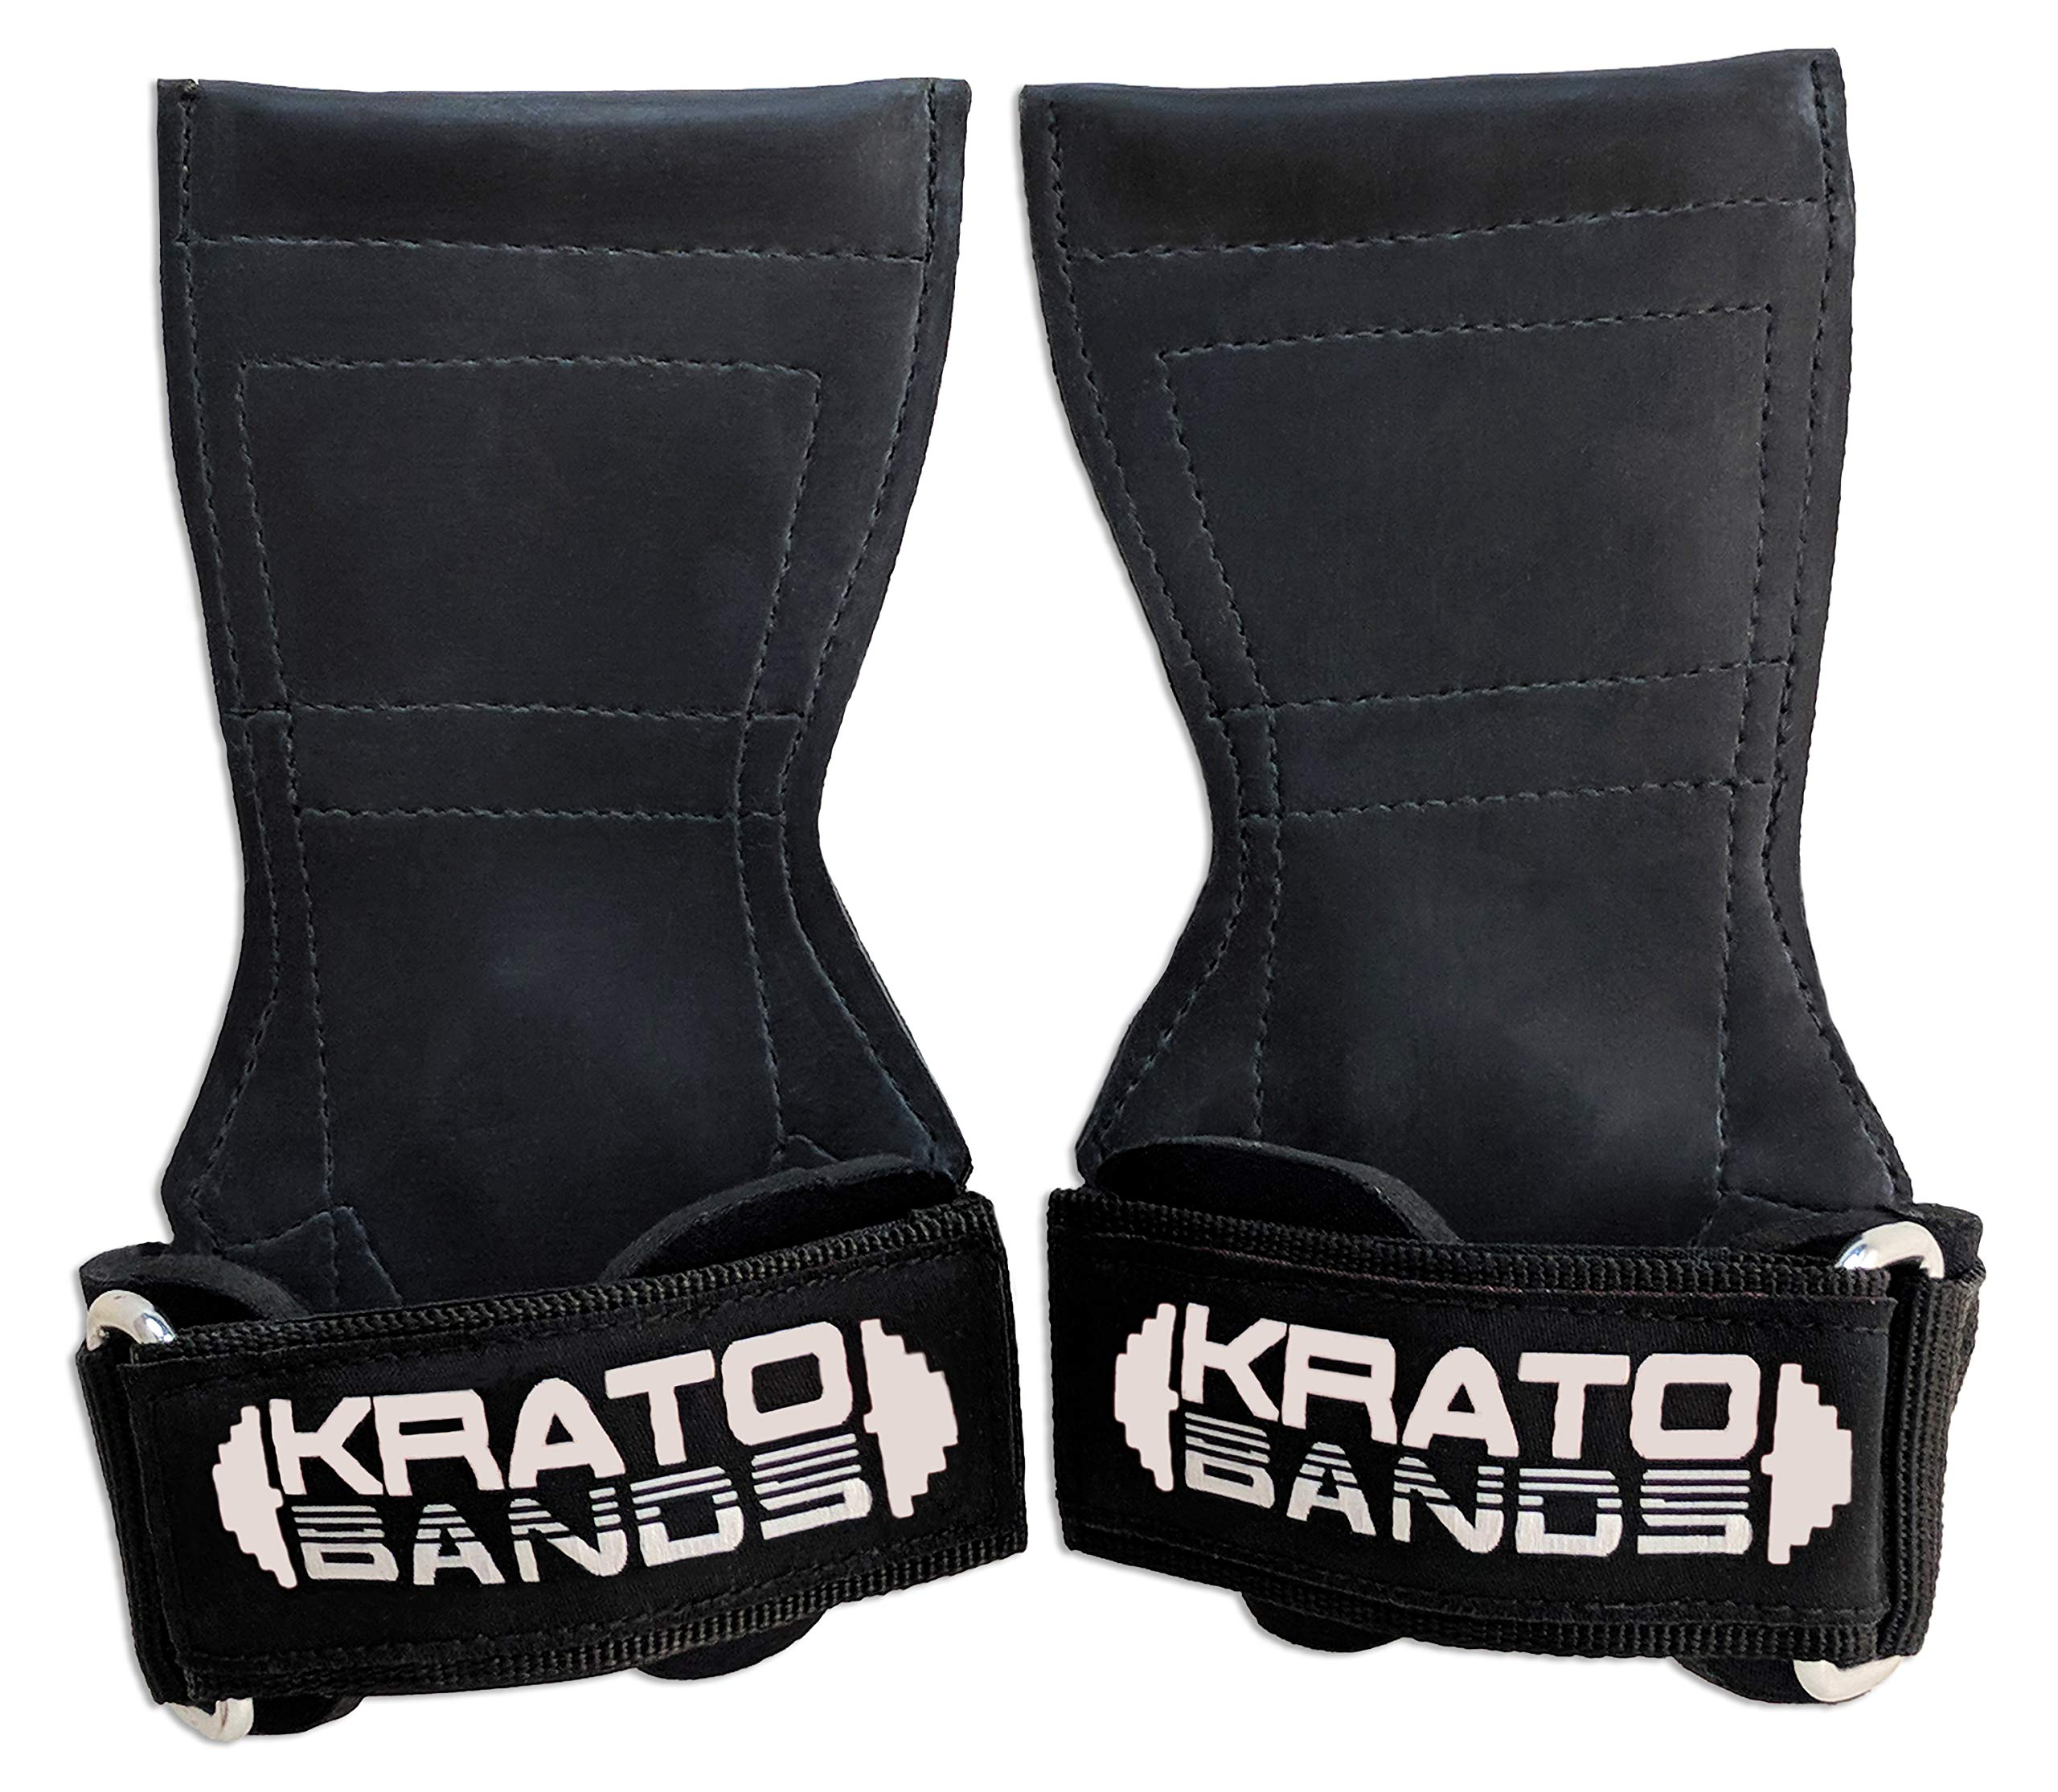 Krato Bands Kevlar PRO. Superior Strength and Comfort Kevlar Design Makes Them The Strongest Lifting Grips Straps Gloves Hooks Available. Versatile Weightlifting.